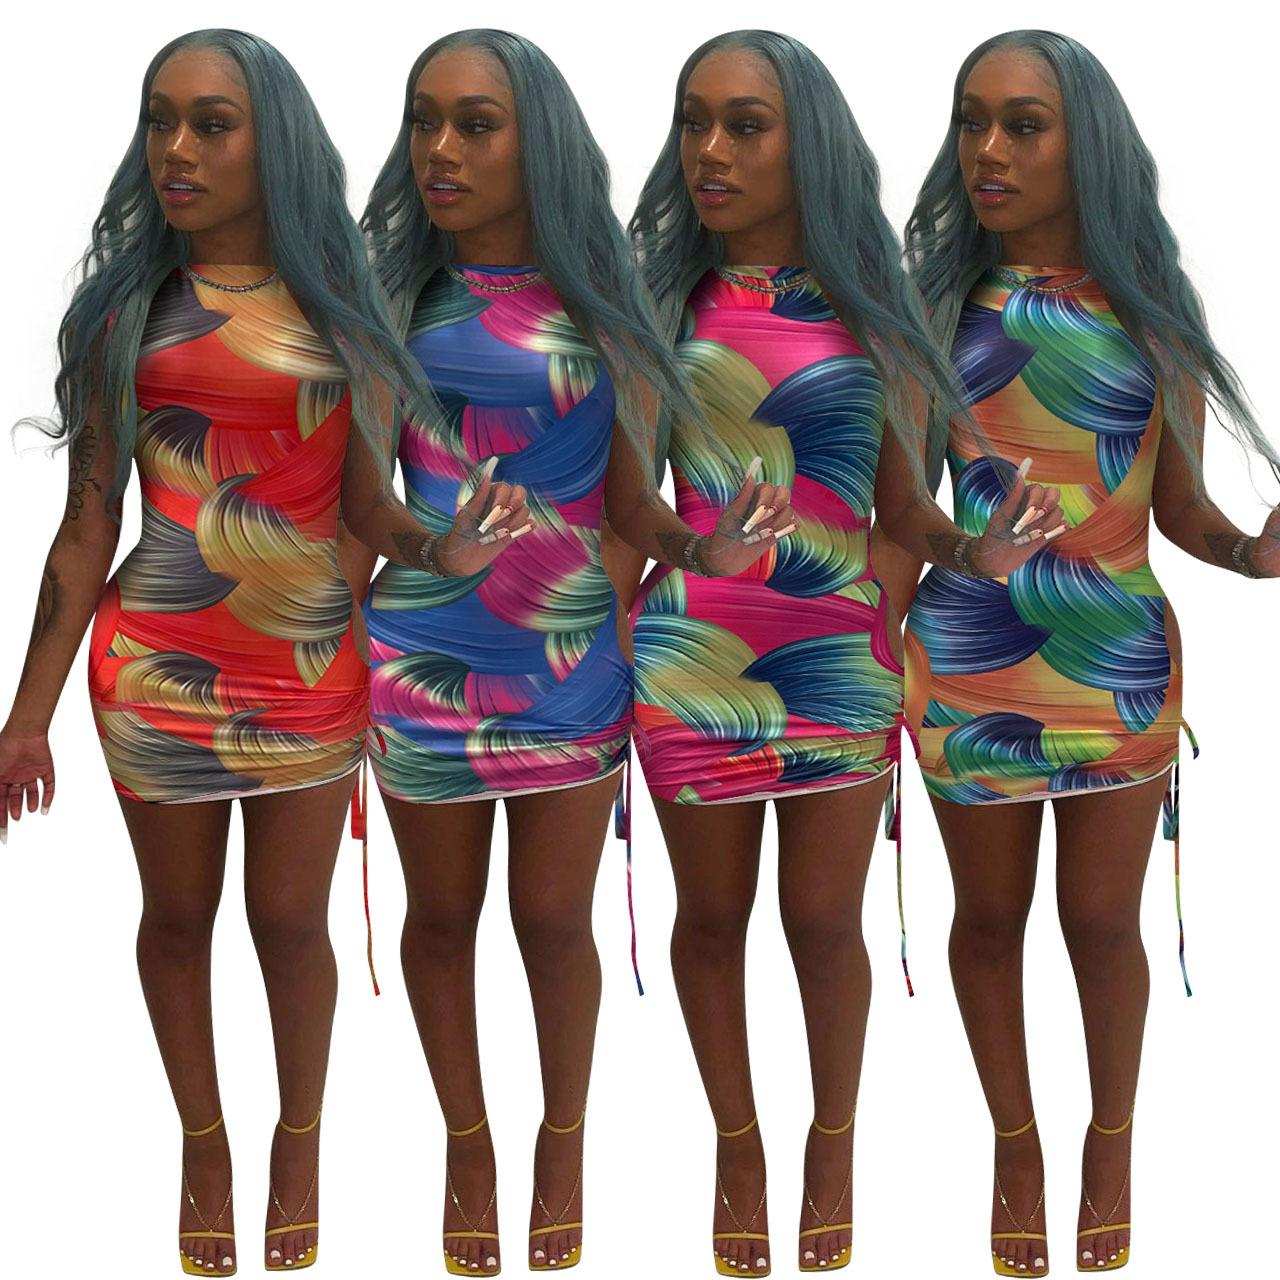 Casual Dresses Summer Short Sleeve Crew Neck Printed Ribbon Pleated Dress woman's clothing Plus Size S/M/L/XL/2XL